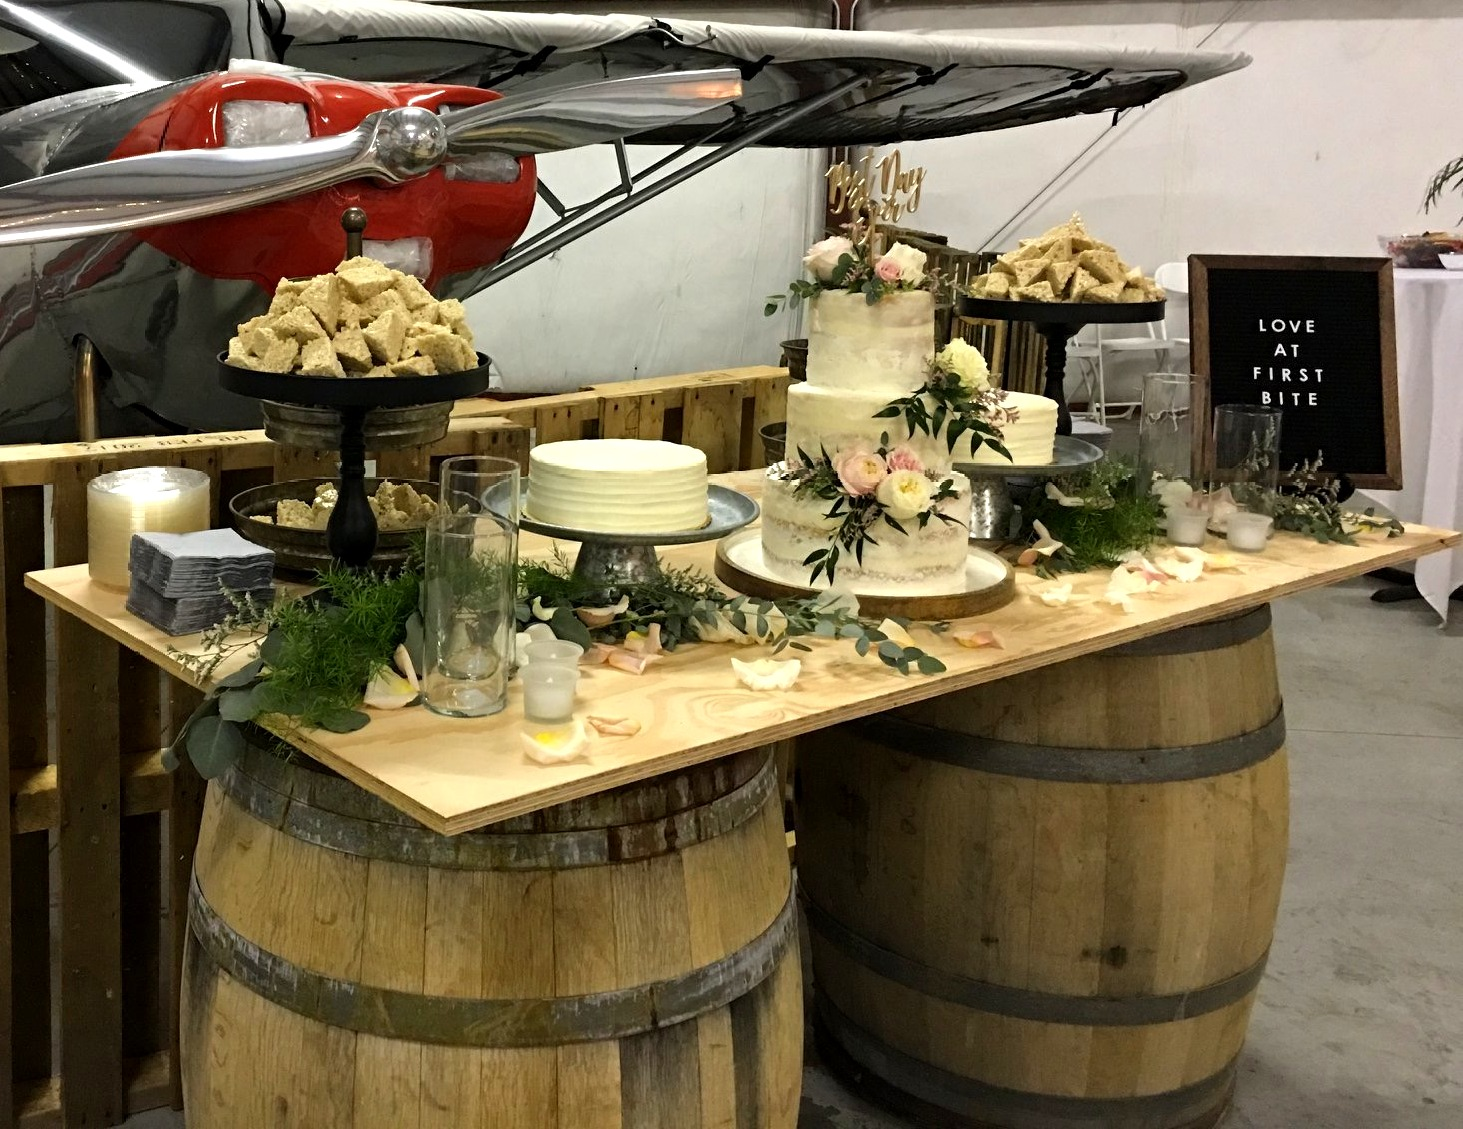 Dessert Table in the Airport Hanger